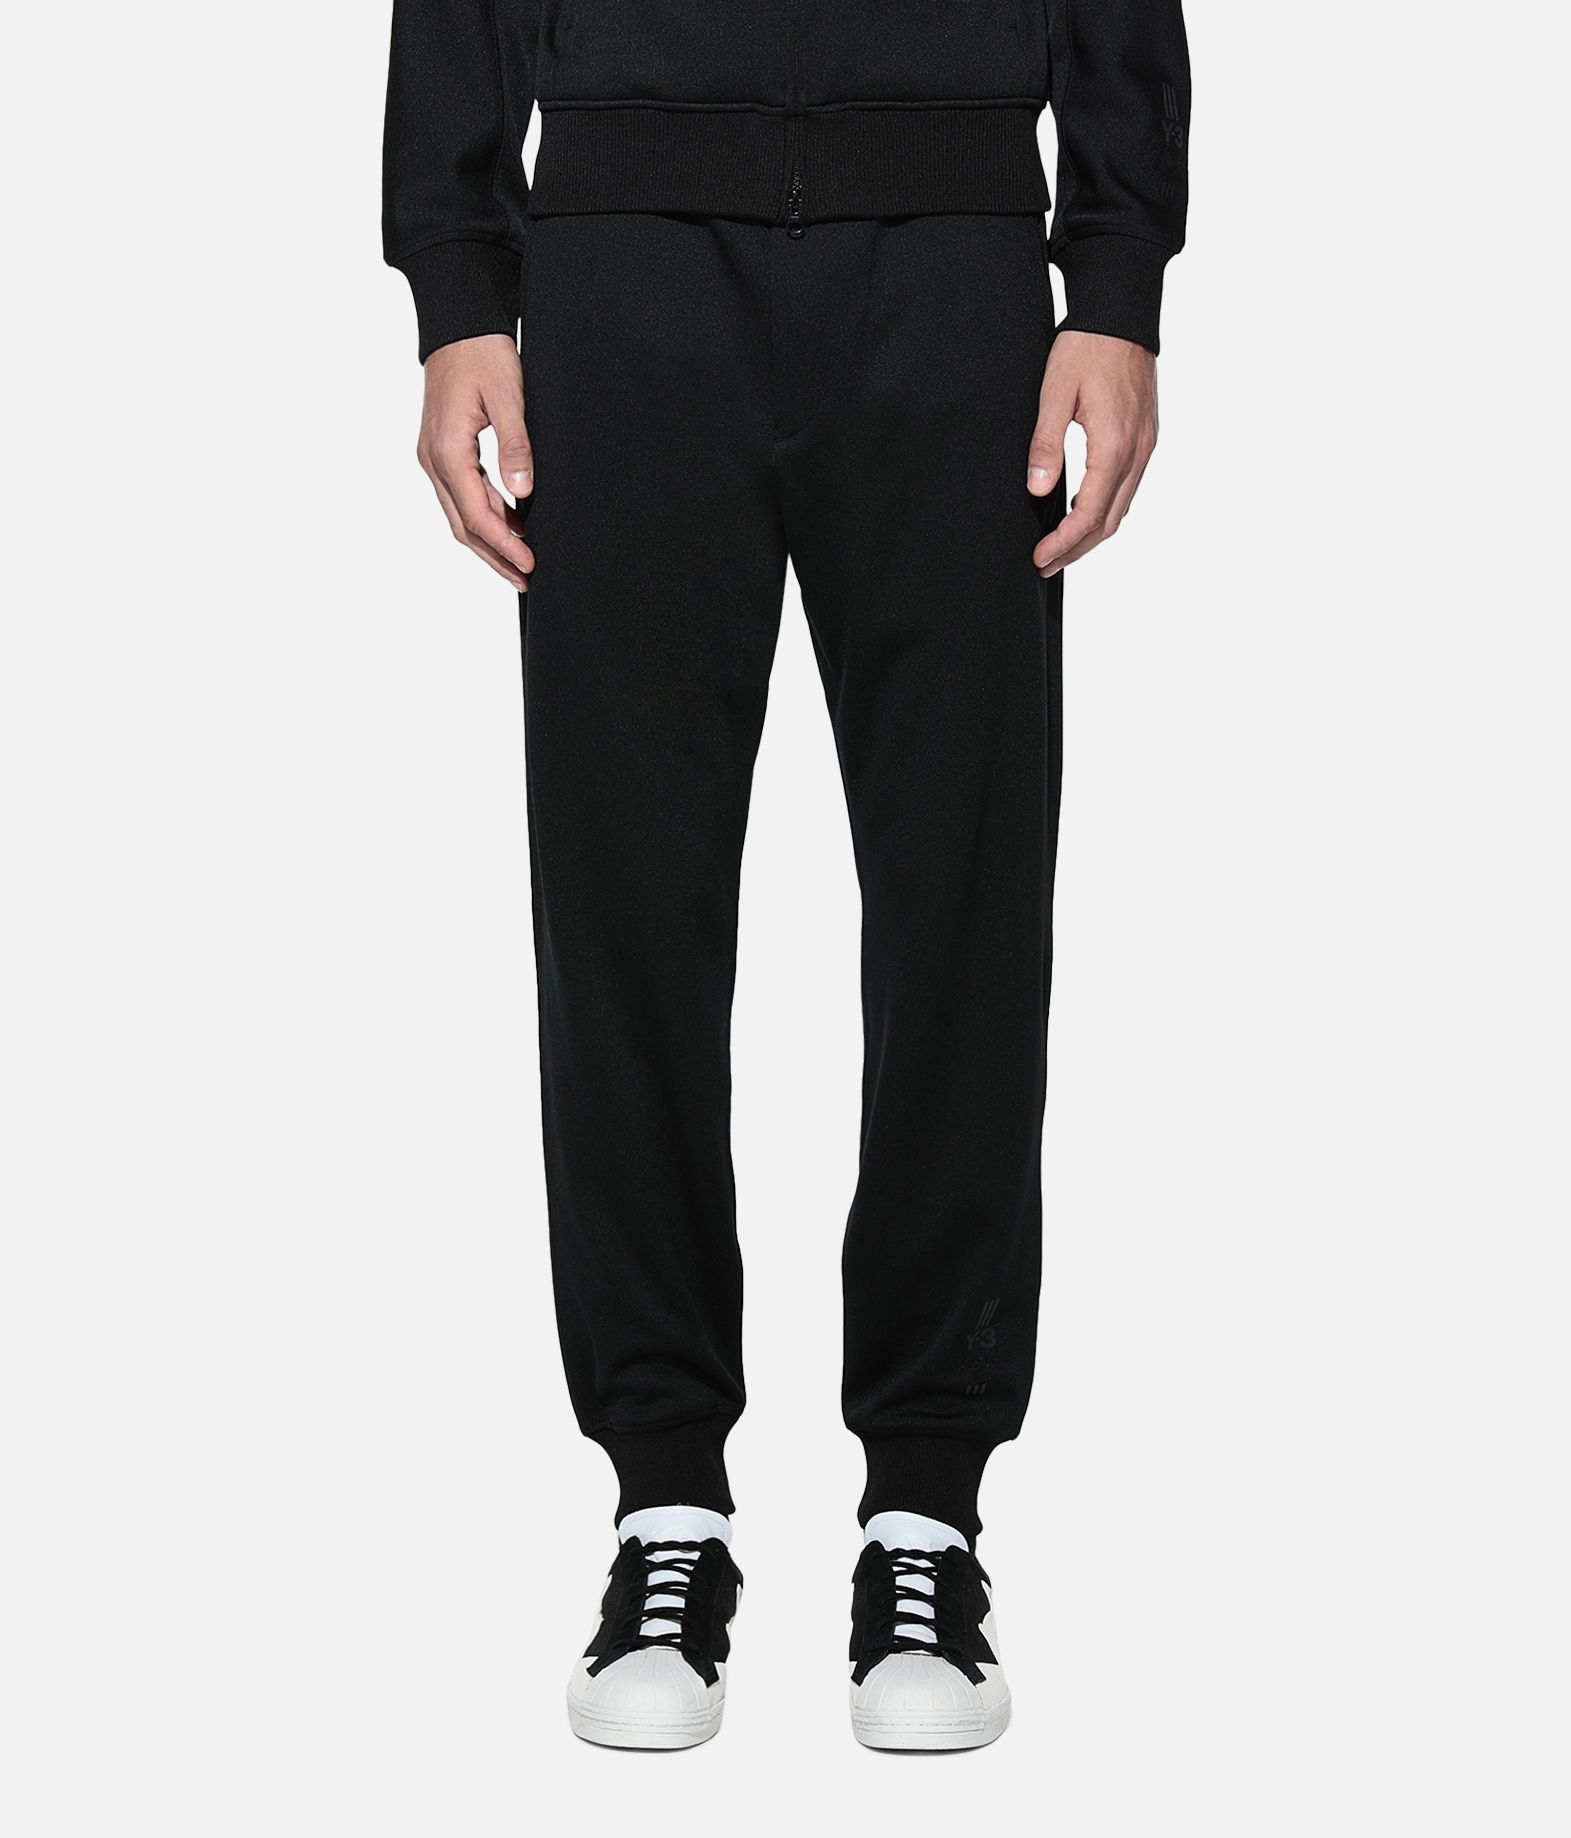 Y-3 Y-3 New Classic Track Pants Track pant Man r